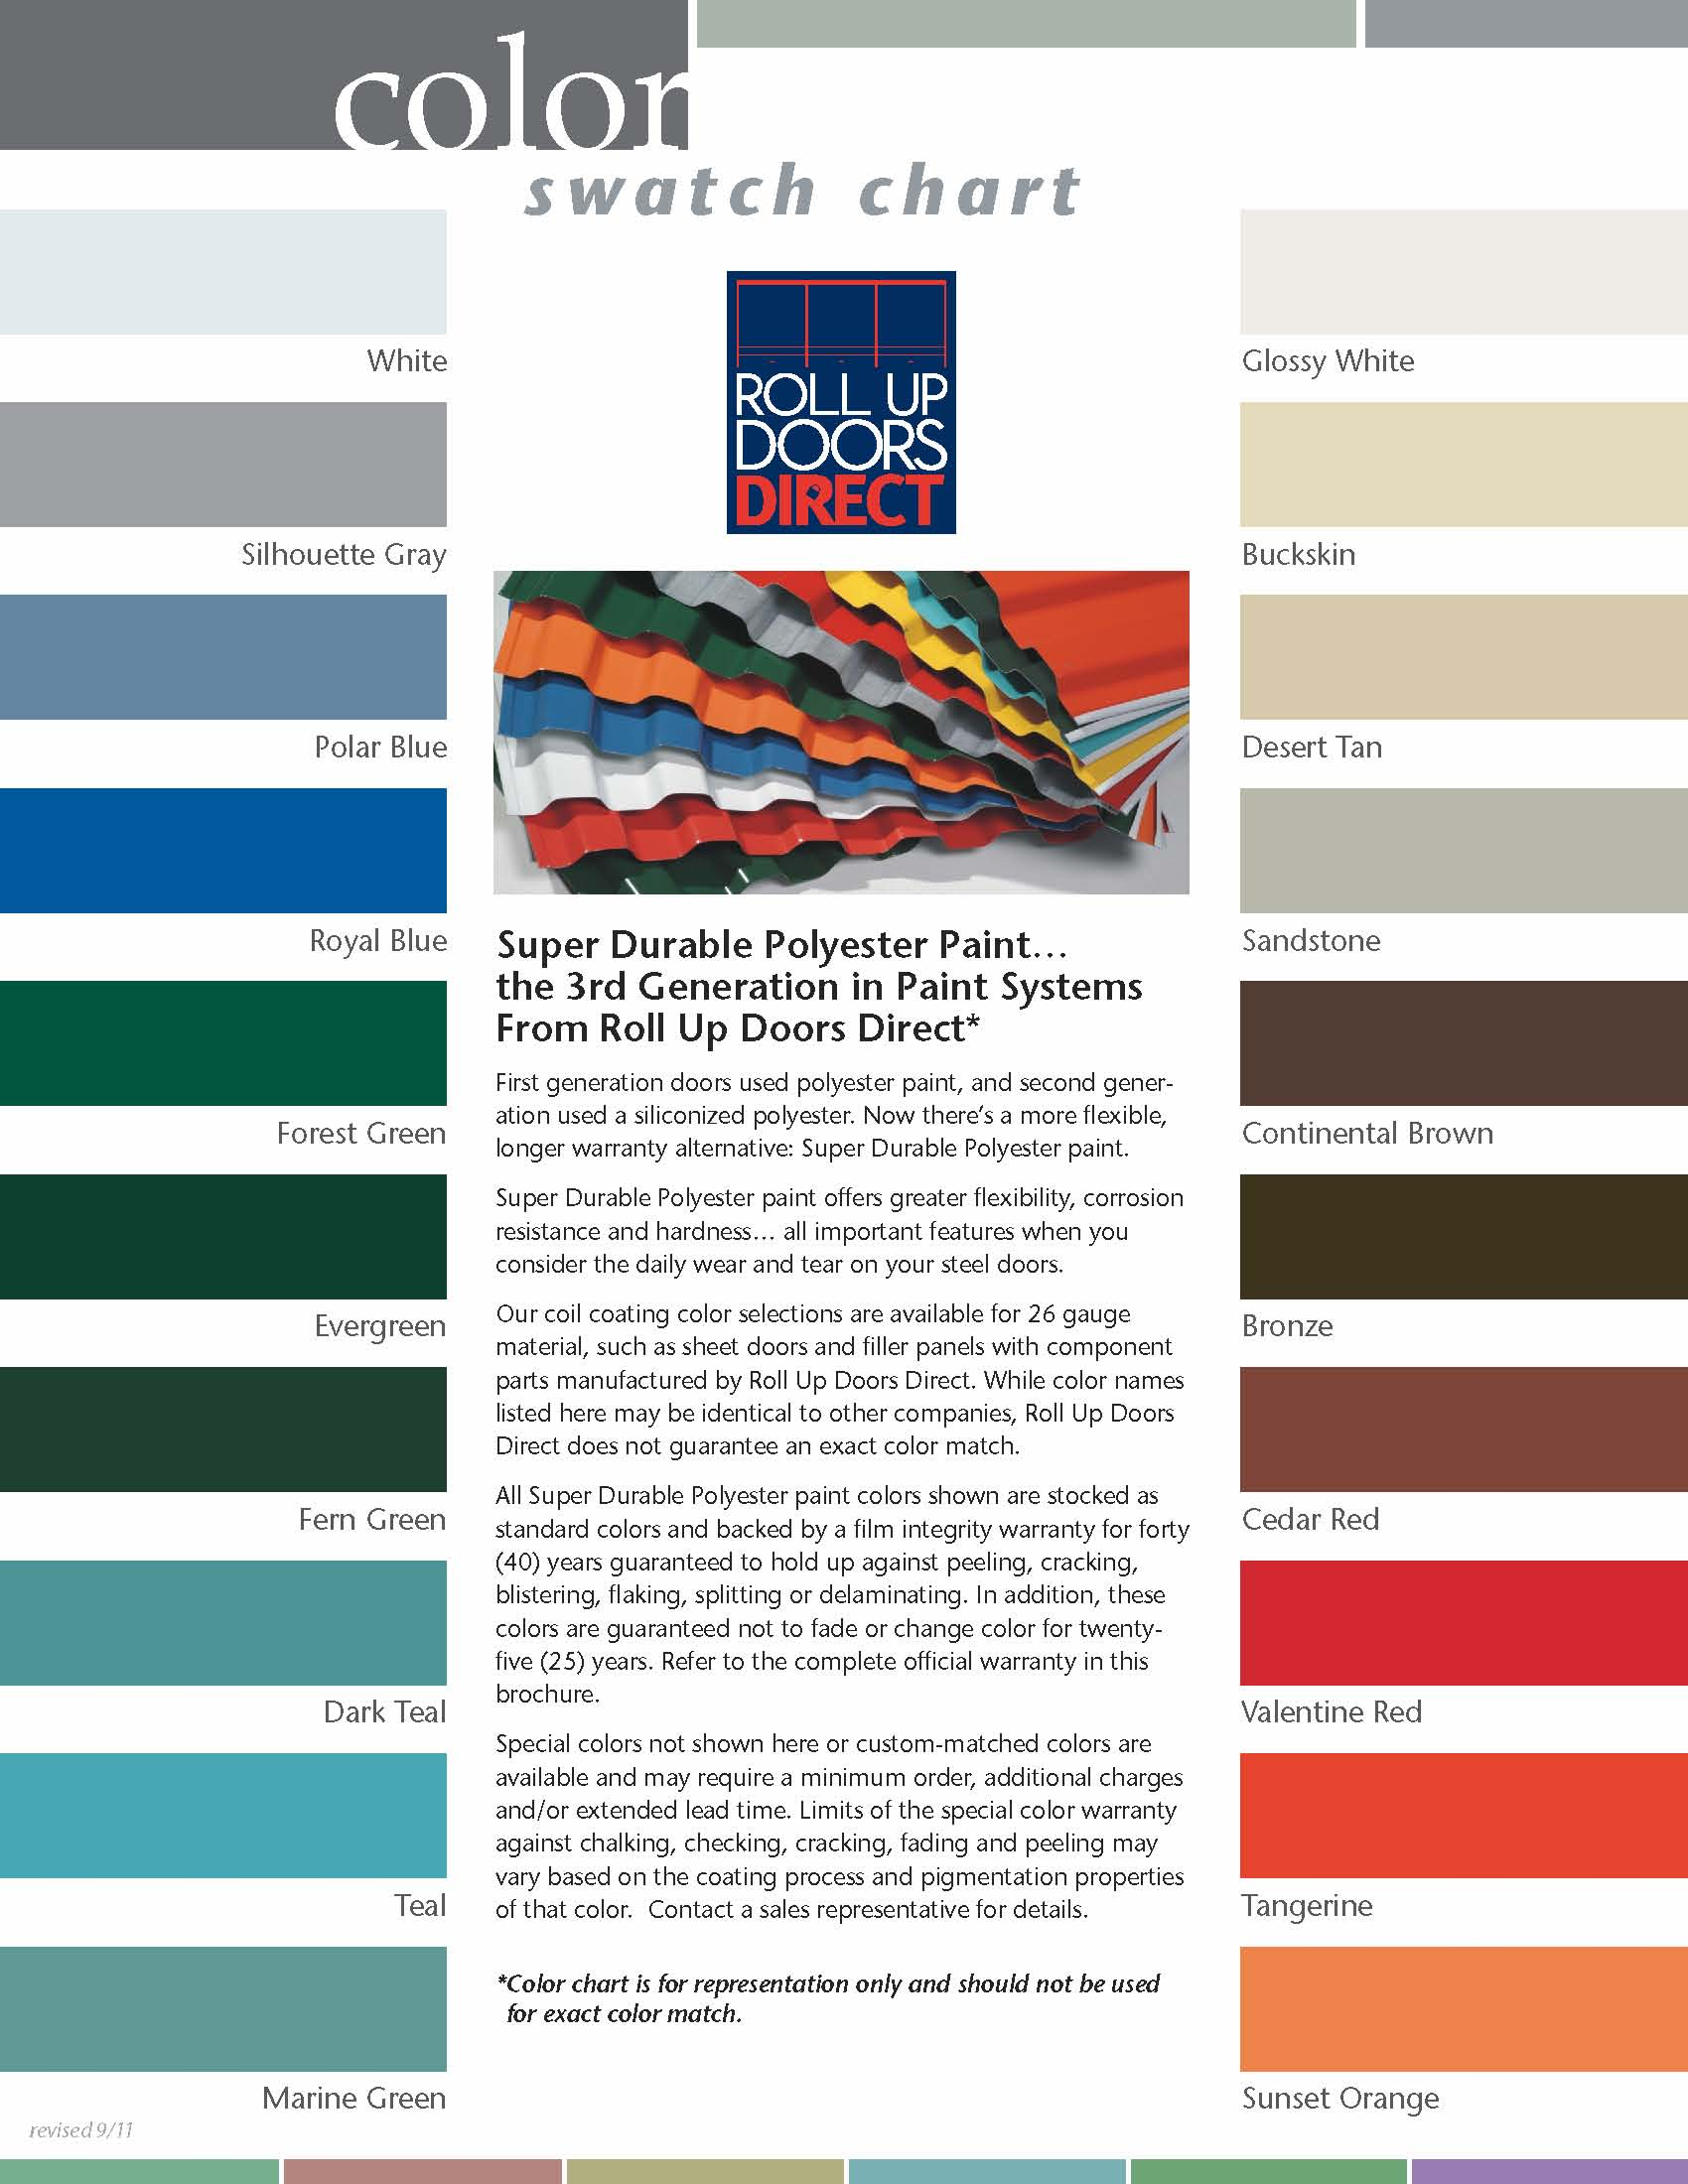 garage doors directWhat Colors Are Roll Up Doors Avaliable In